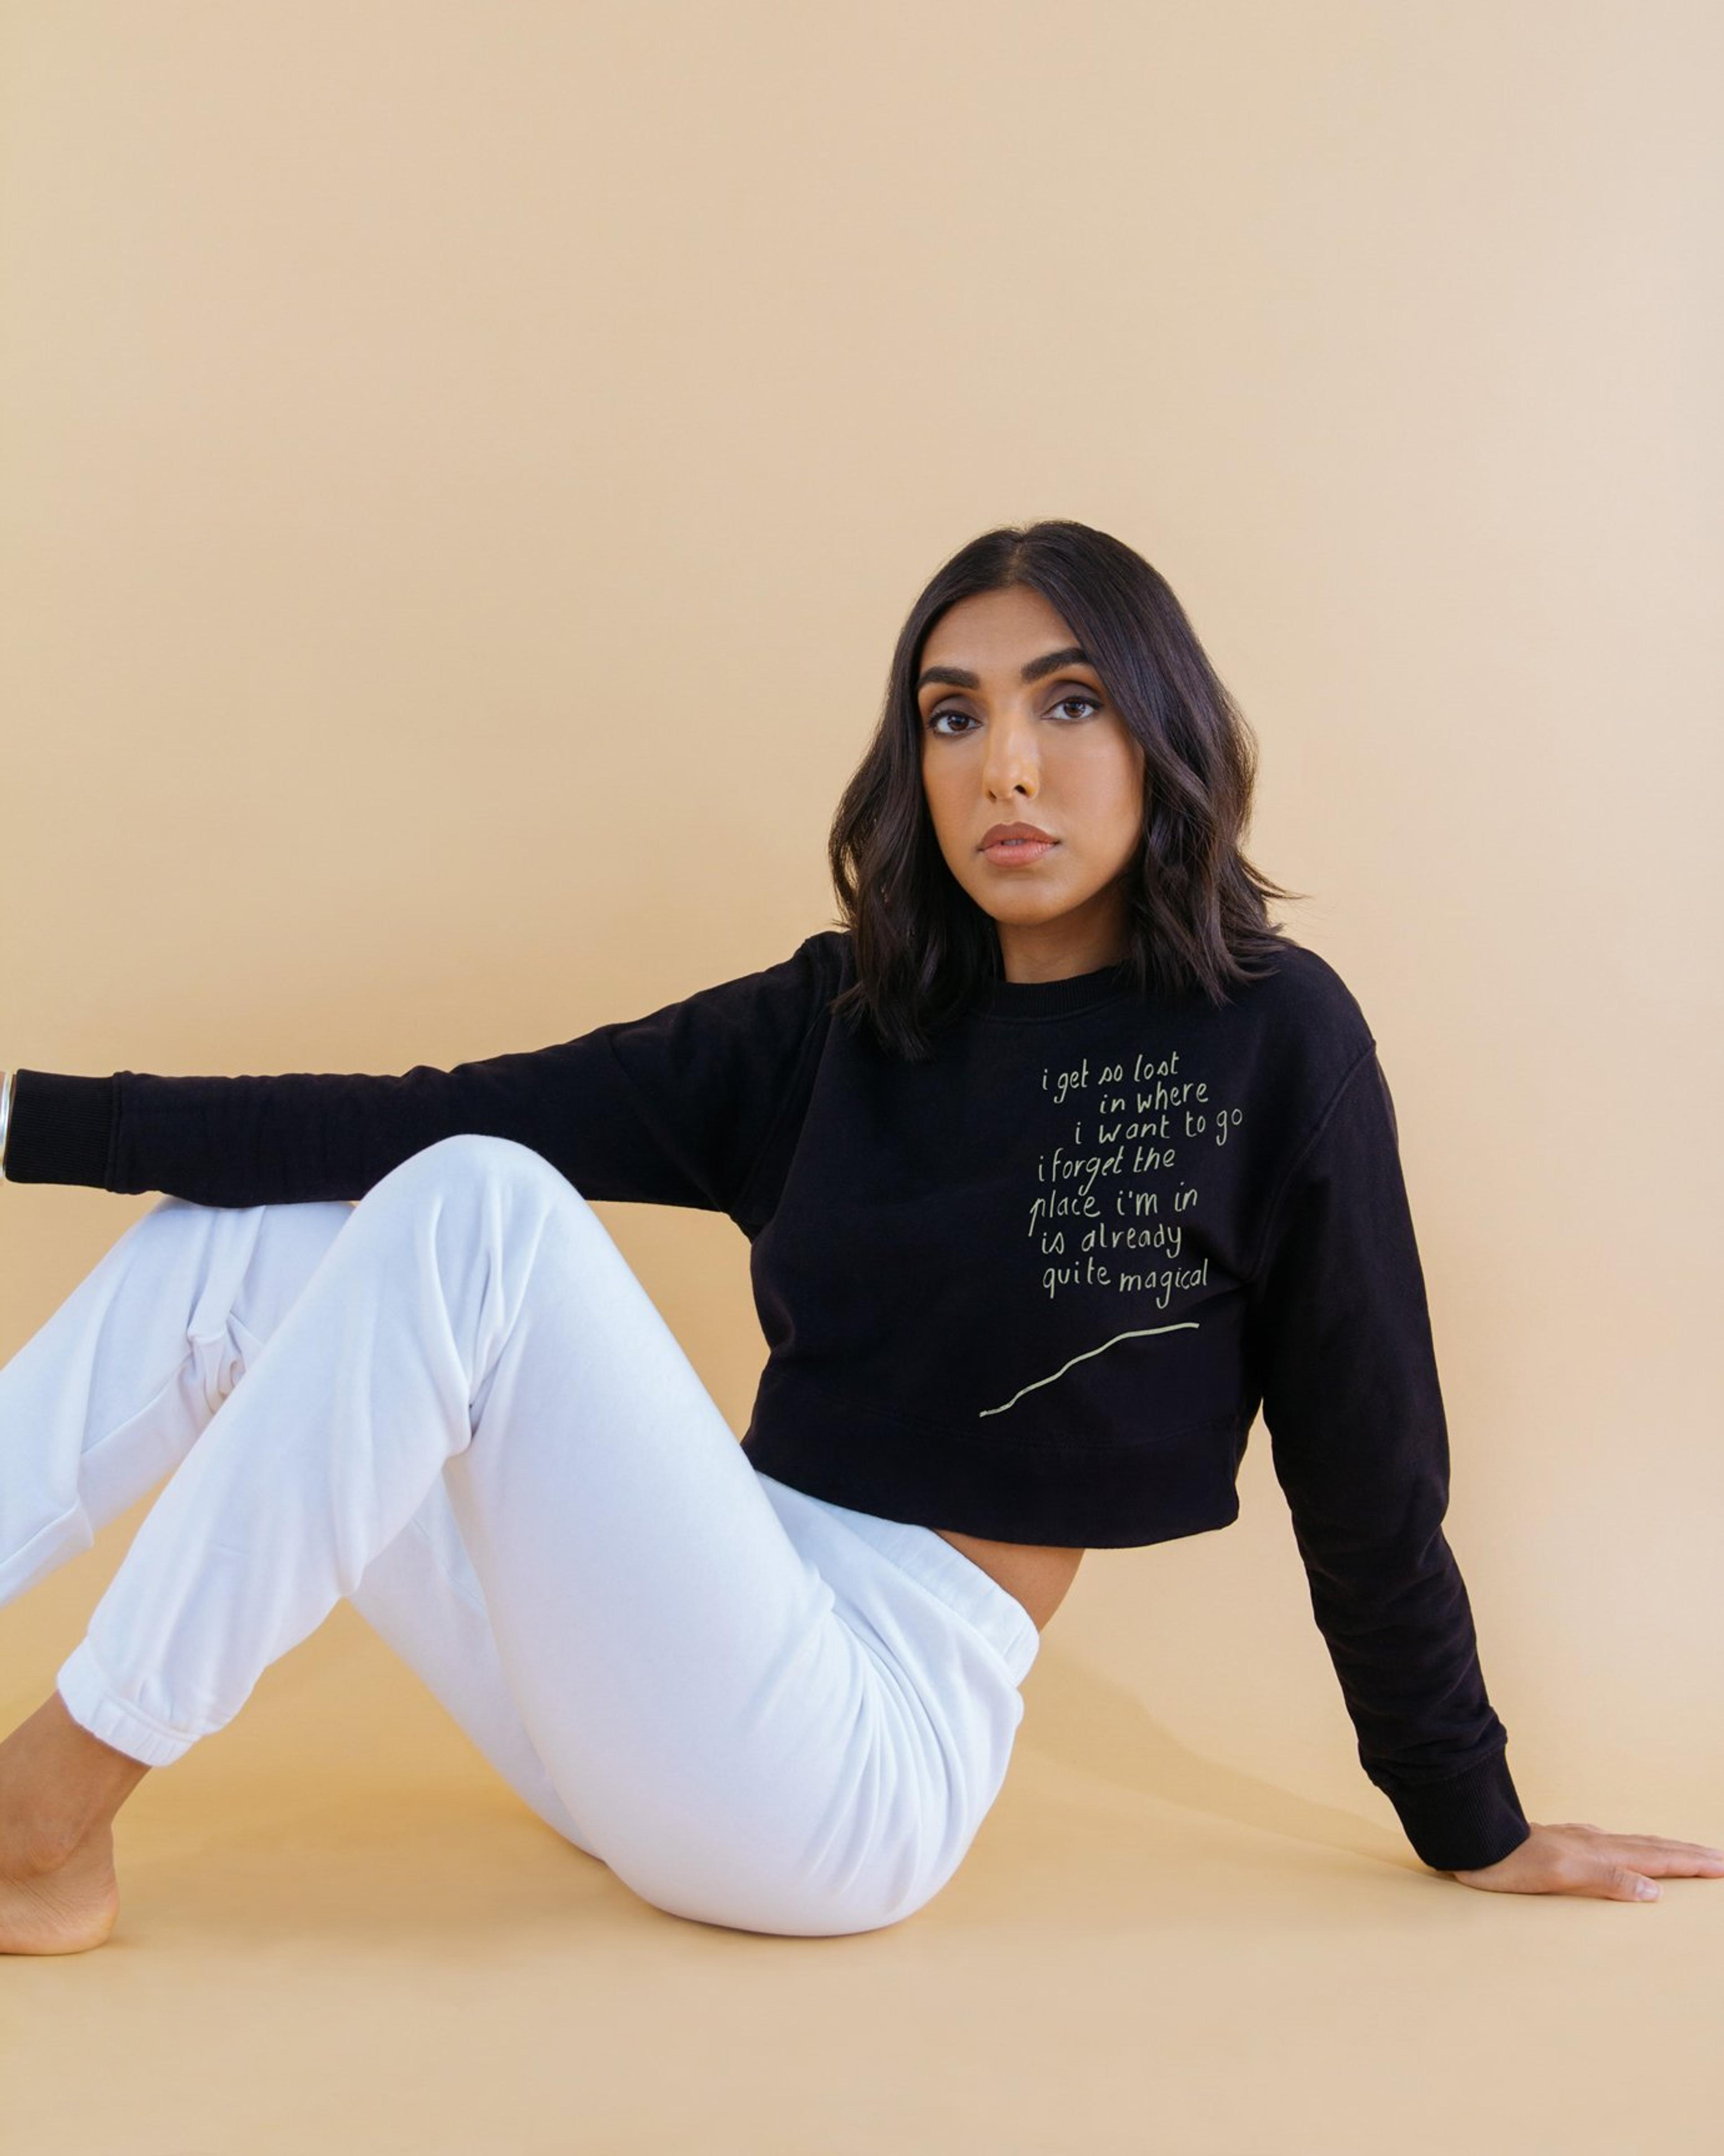 A Sweatshirt designed by Rupi Kaur, made by Kotn Supply